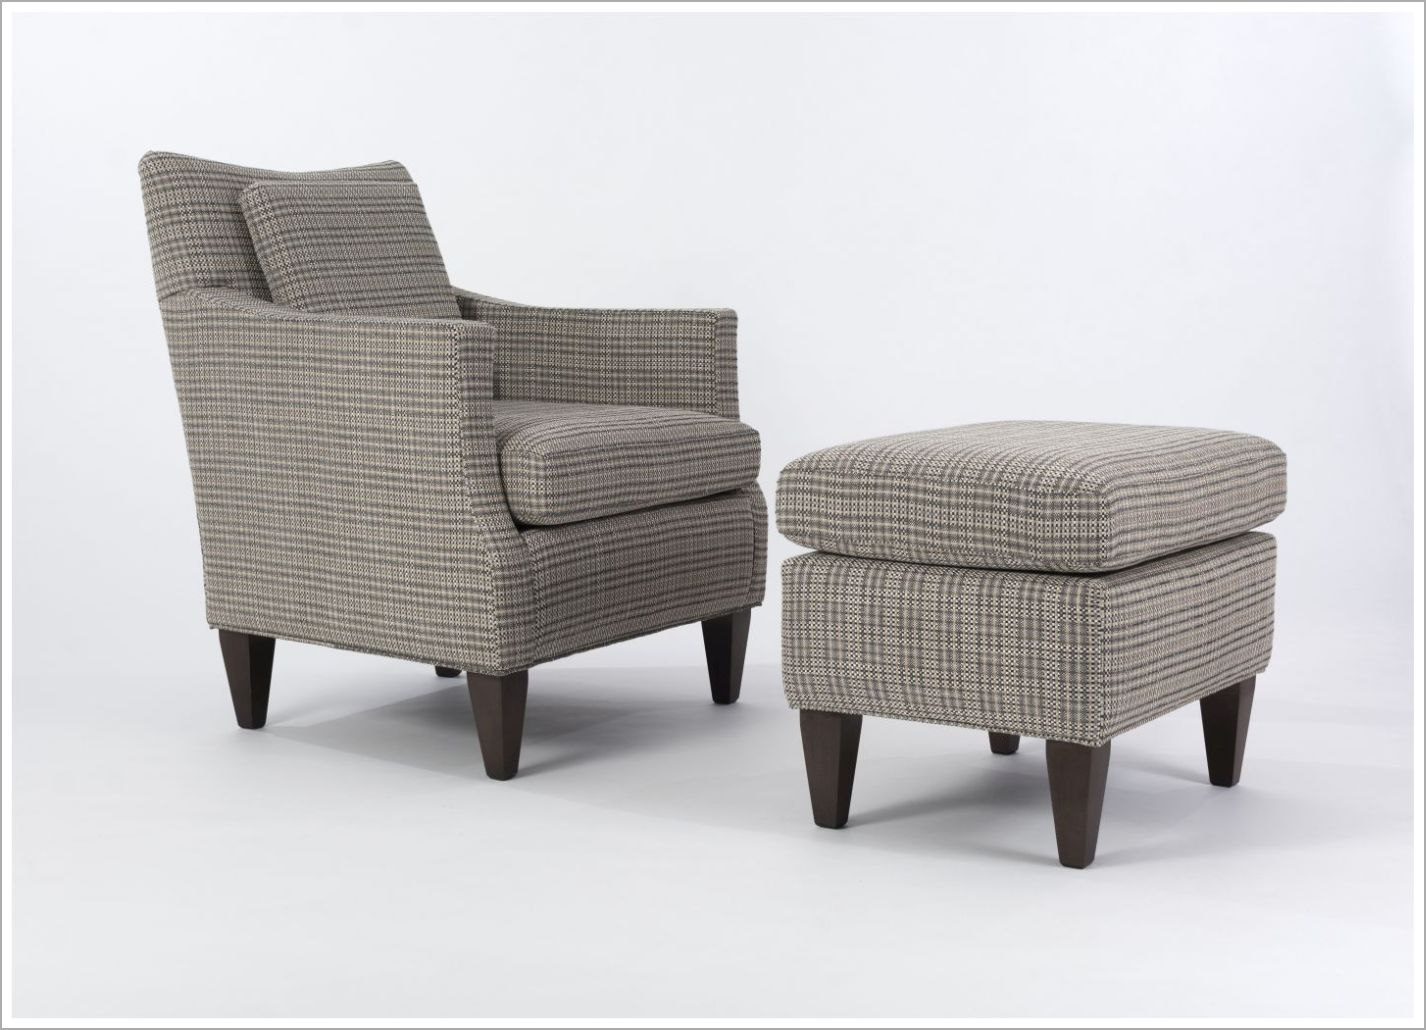 Custom Hotel Room Upholstered Chair and Ottoman